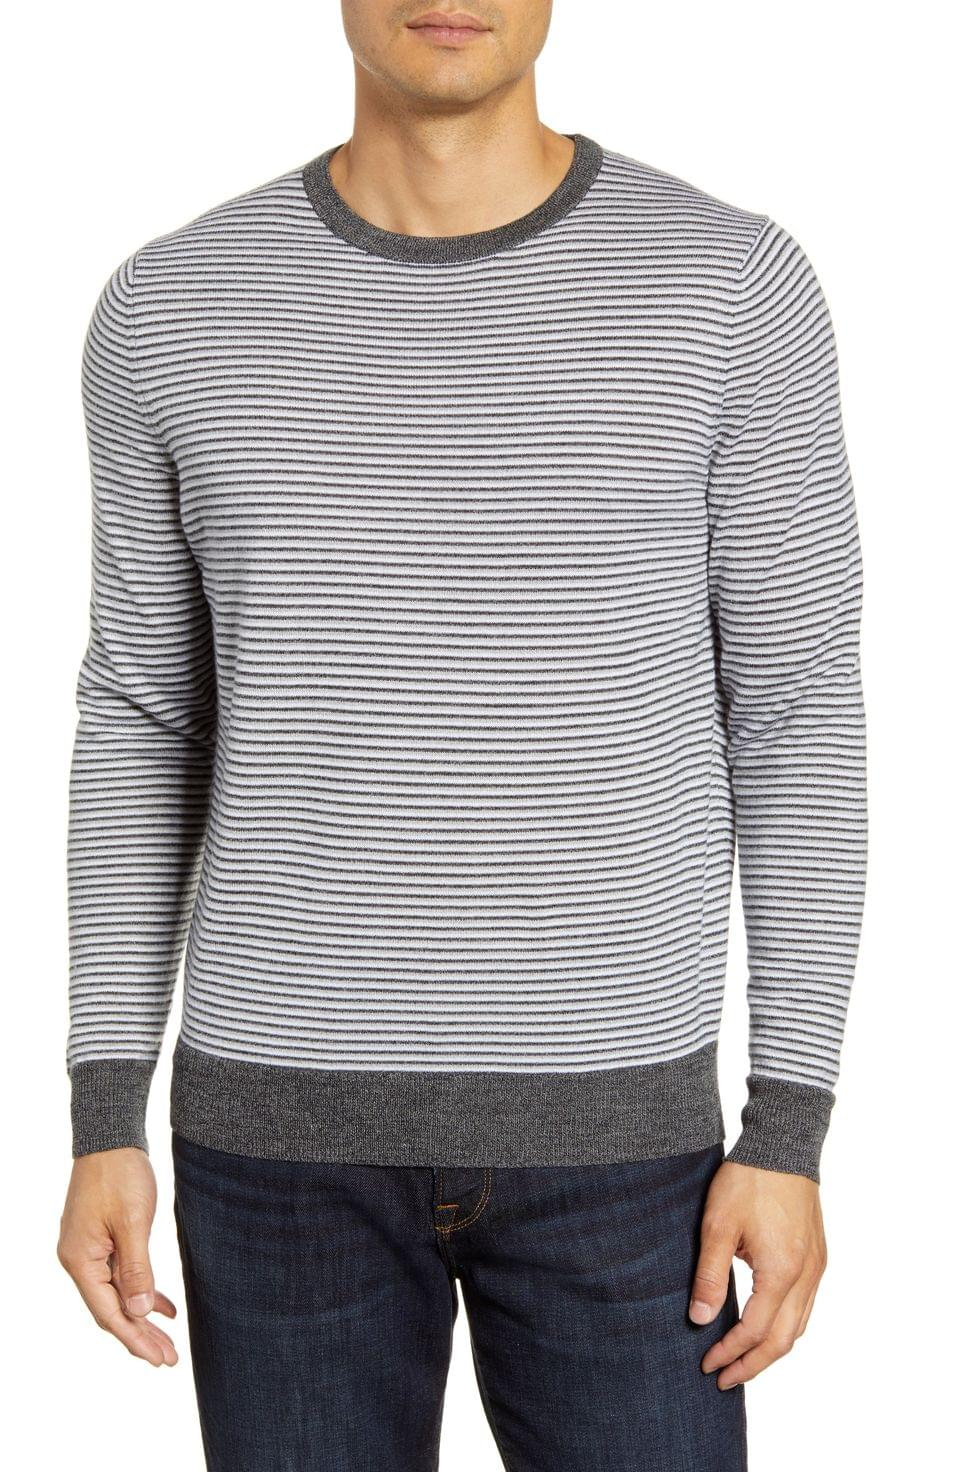 Men's Nordstrom Men's Shop Regular Fit Stripe Merino Wool Blend Sweater